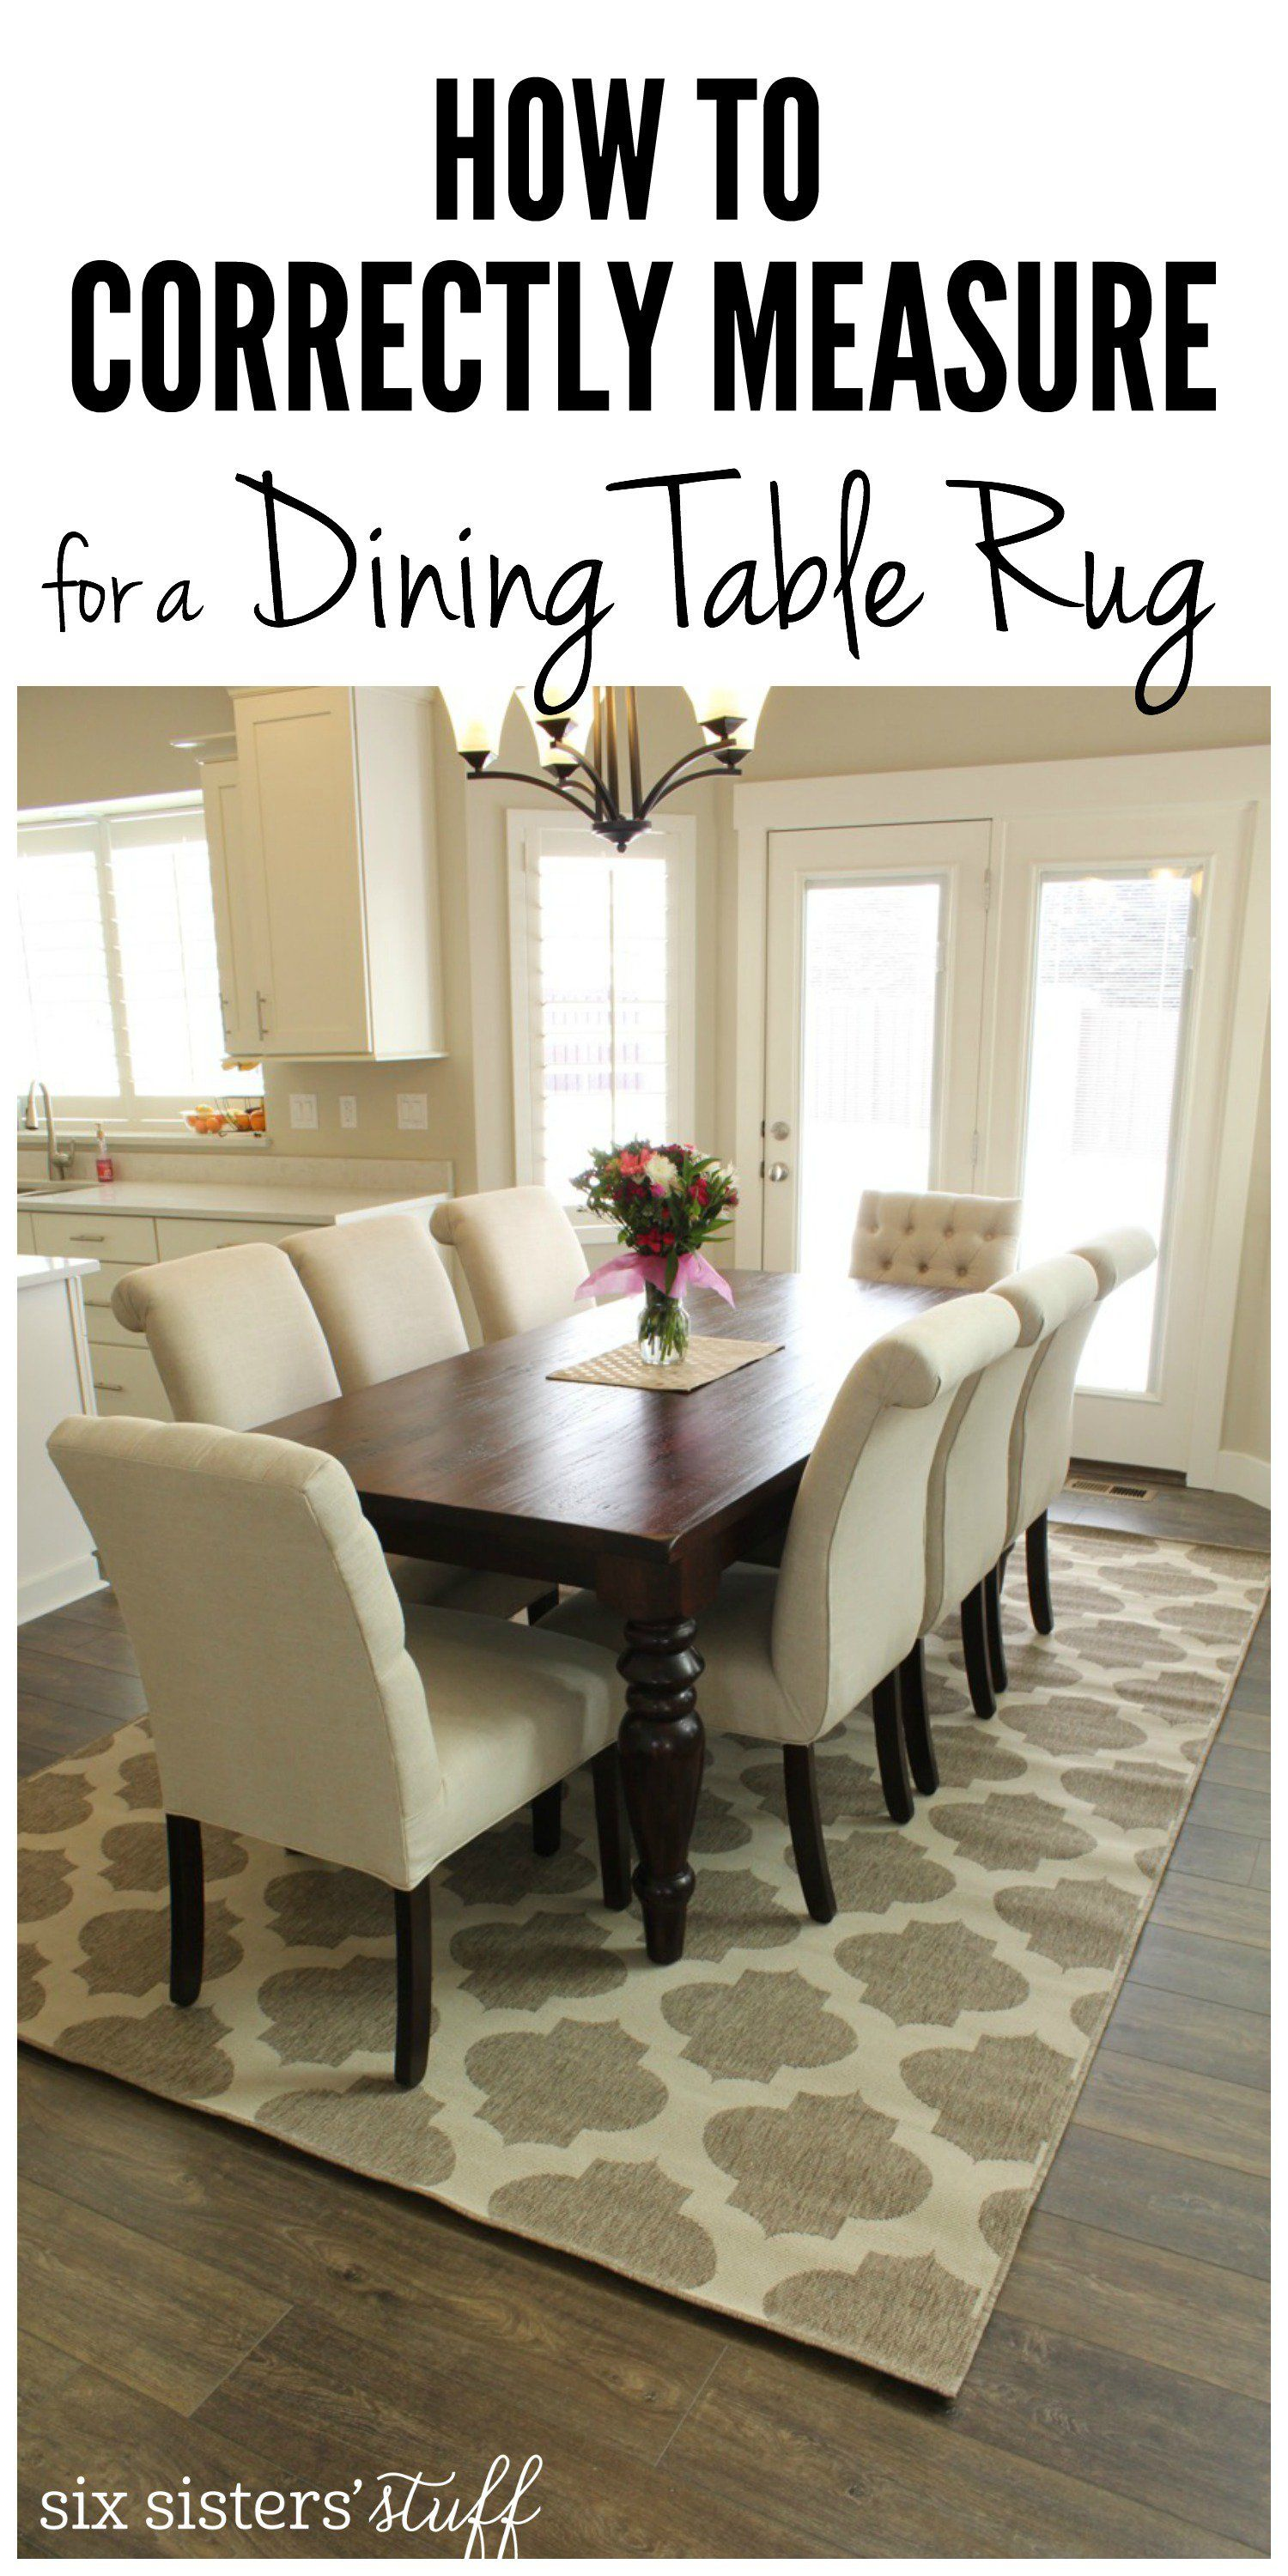 Gentil How To Correctly Measure For A Dining Room Table Rug